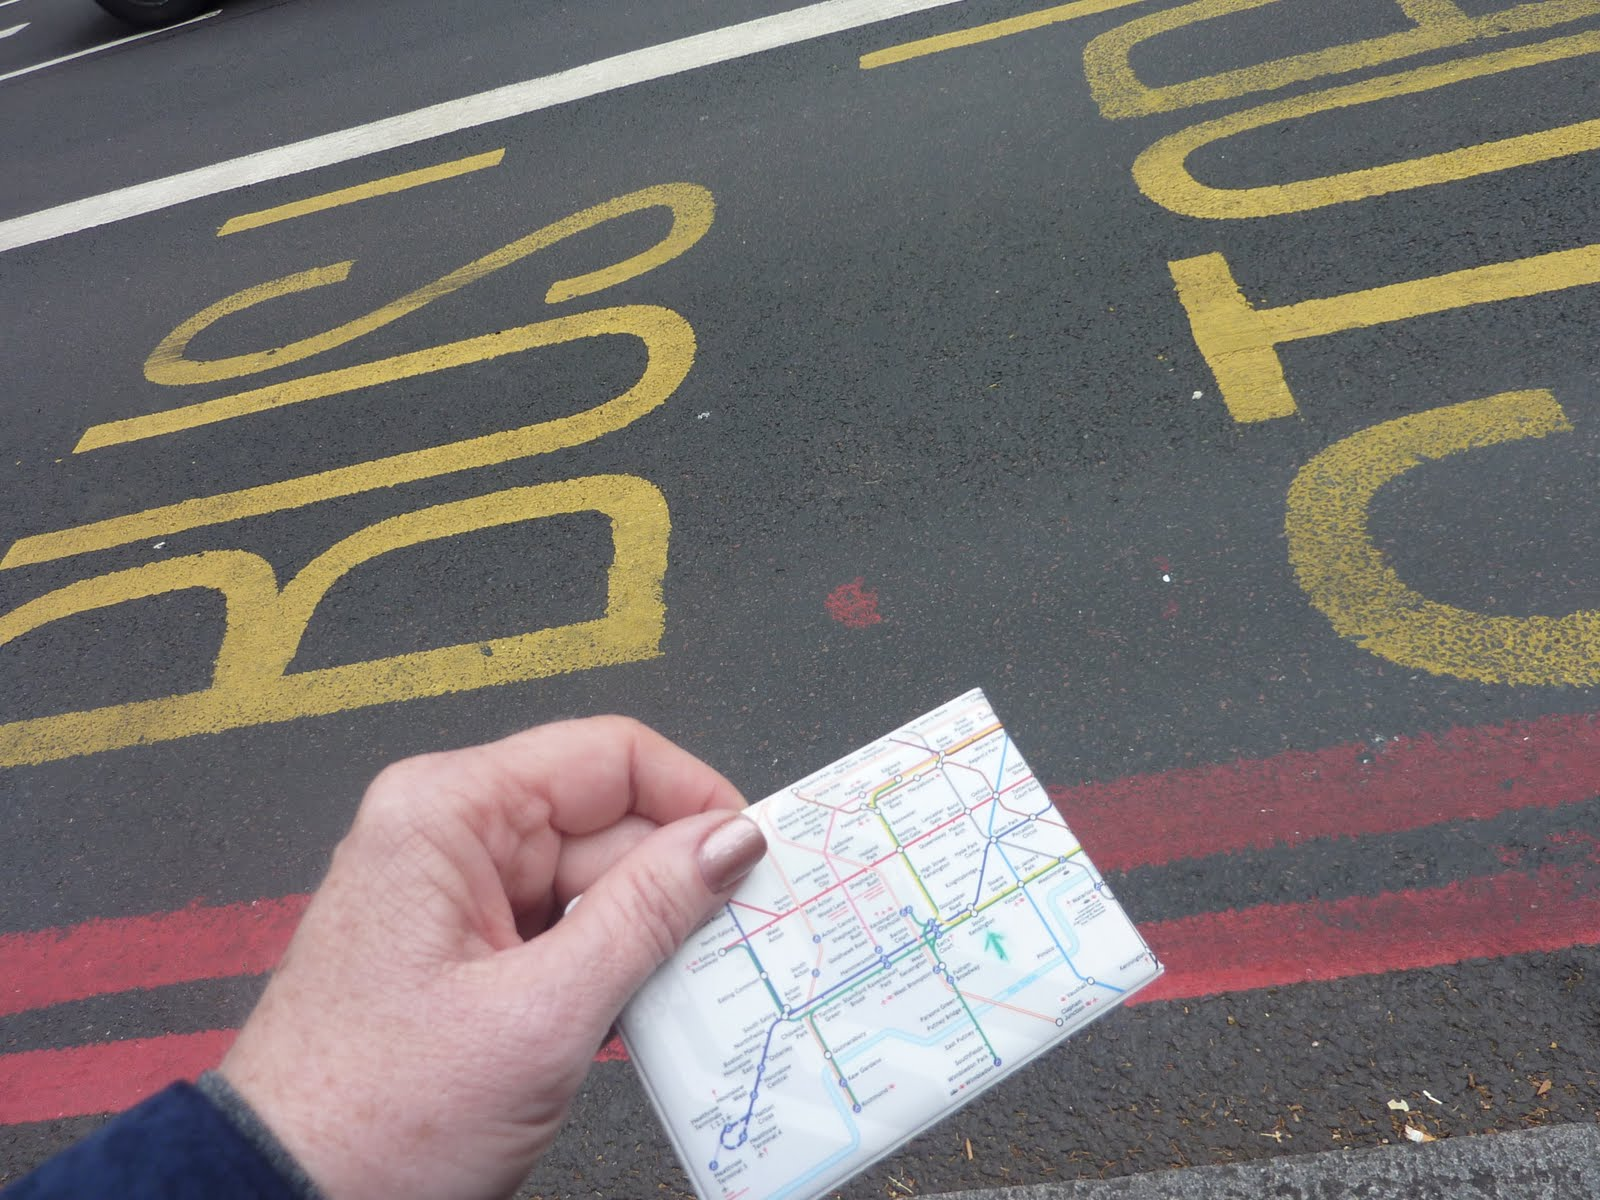 how to get an oyster card refund